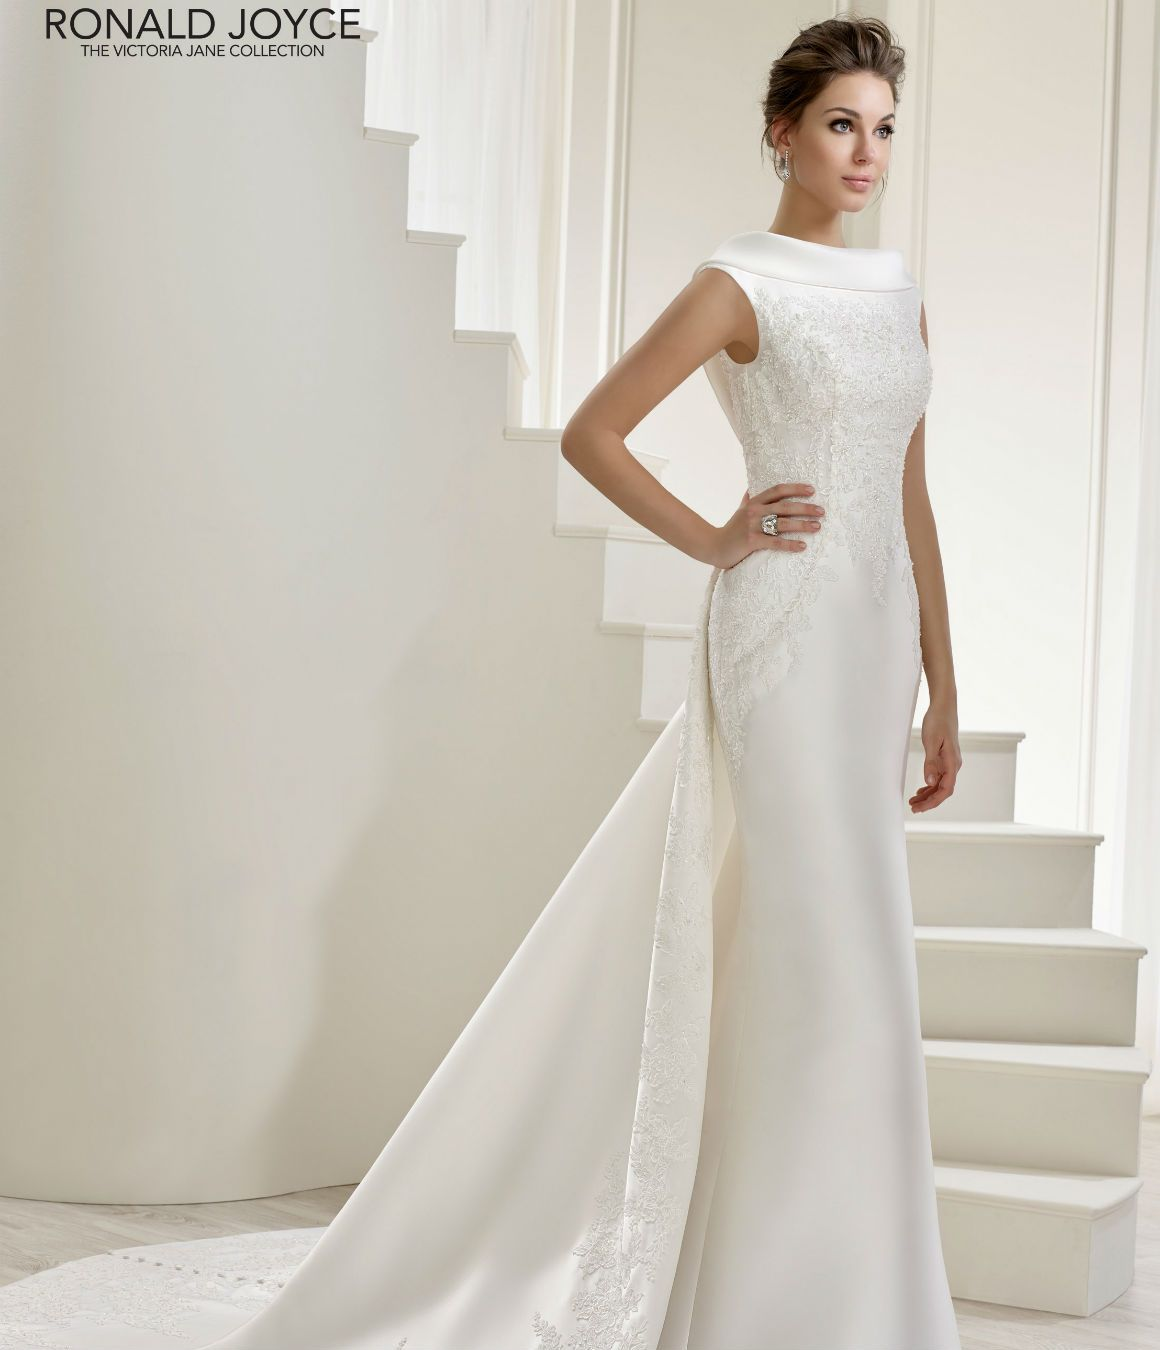 Style available in white and ivory romantic wedding dresses